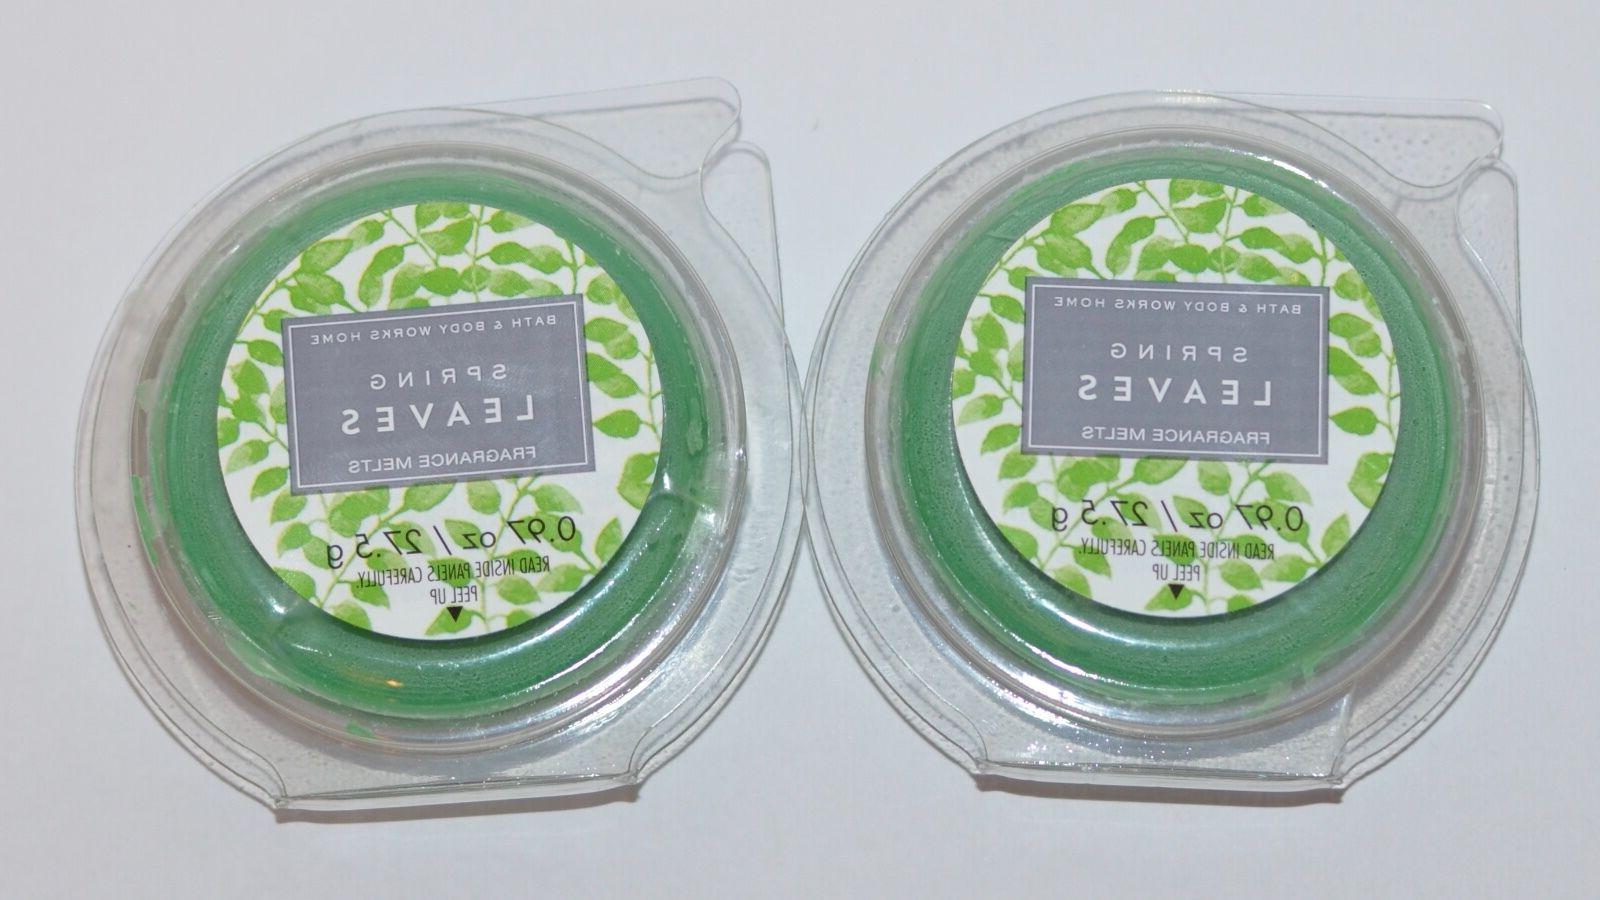 LOT & BODY WORKS LEAVES WAX WHITE BARN REFILL